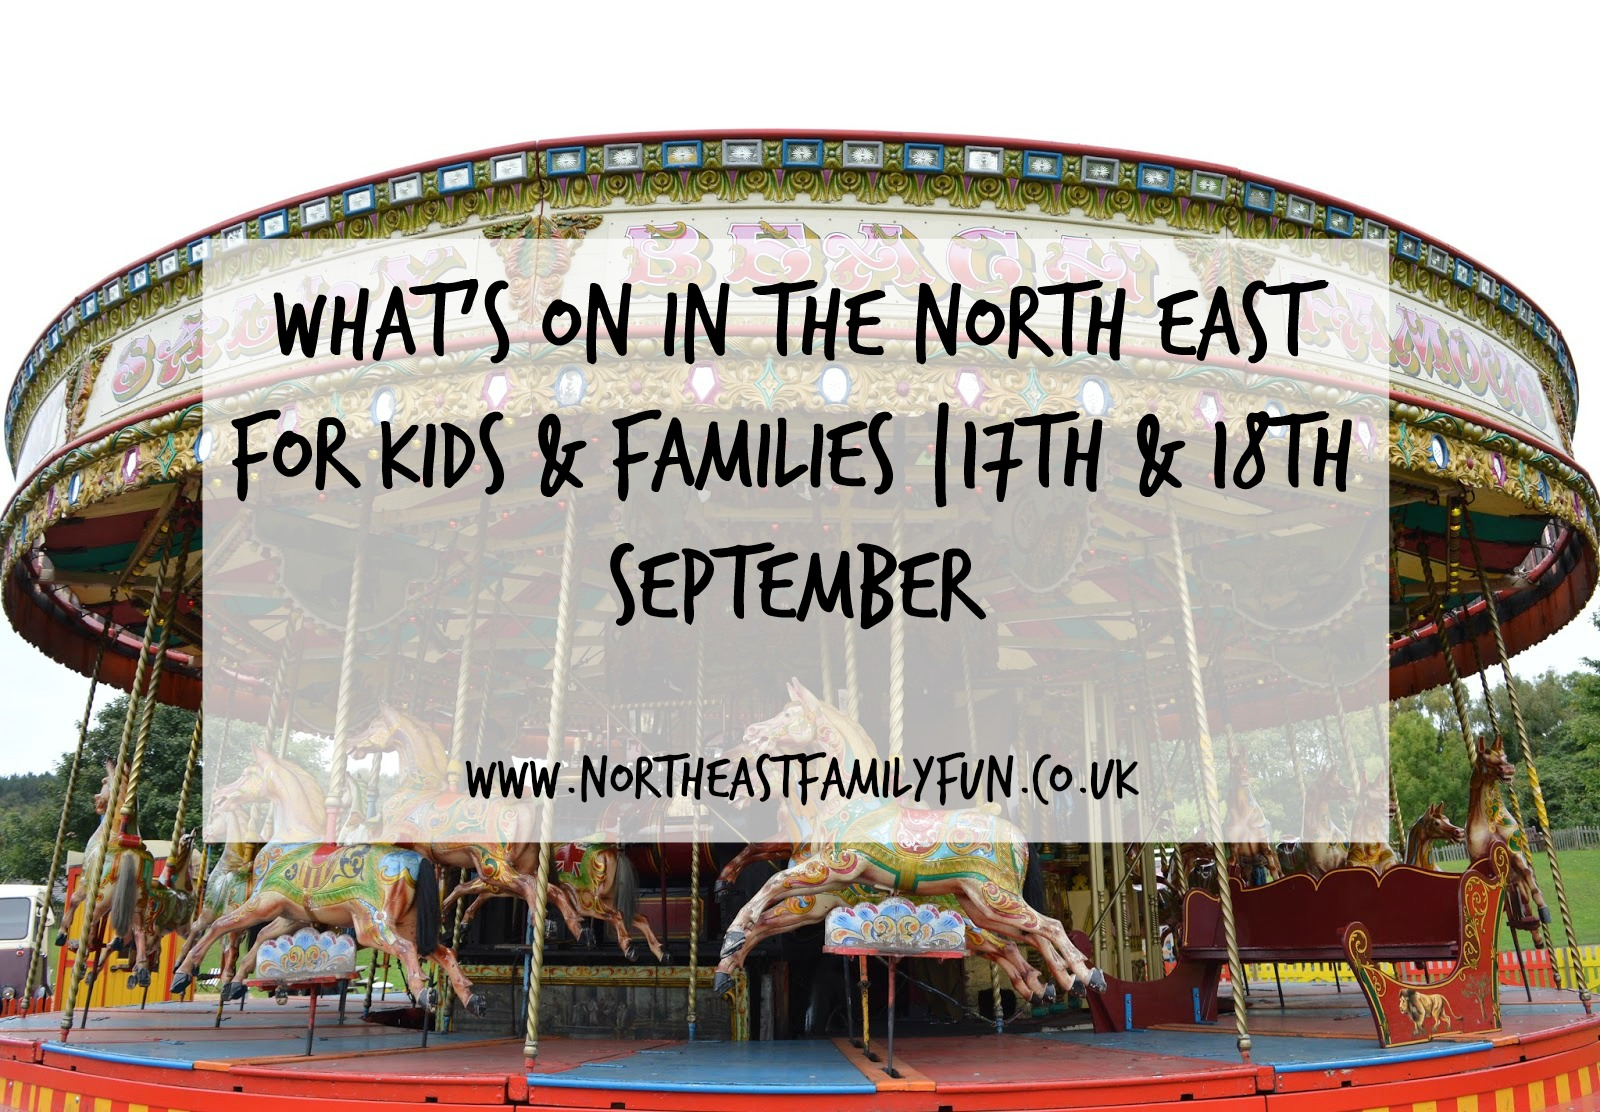 Our guide to what's on for kids and families in the North East on 17th and 18th September. Includes the Festival of Thrift in Redcar and Alnwick Food Festival.